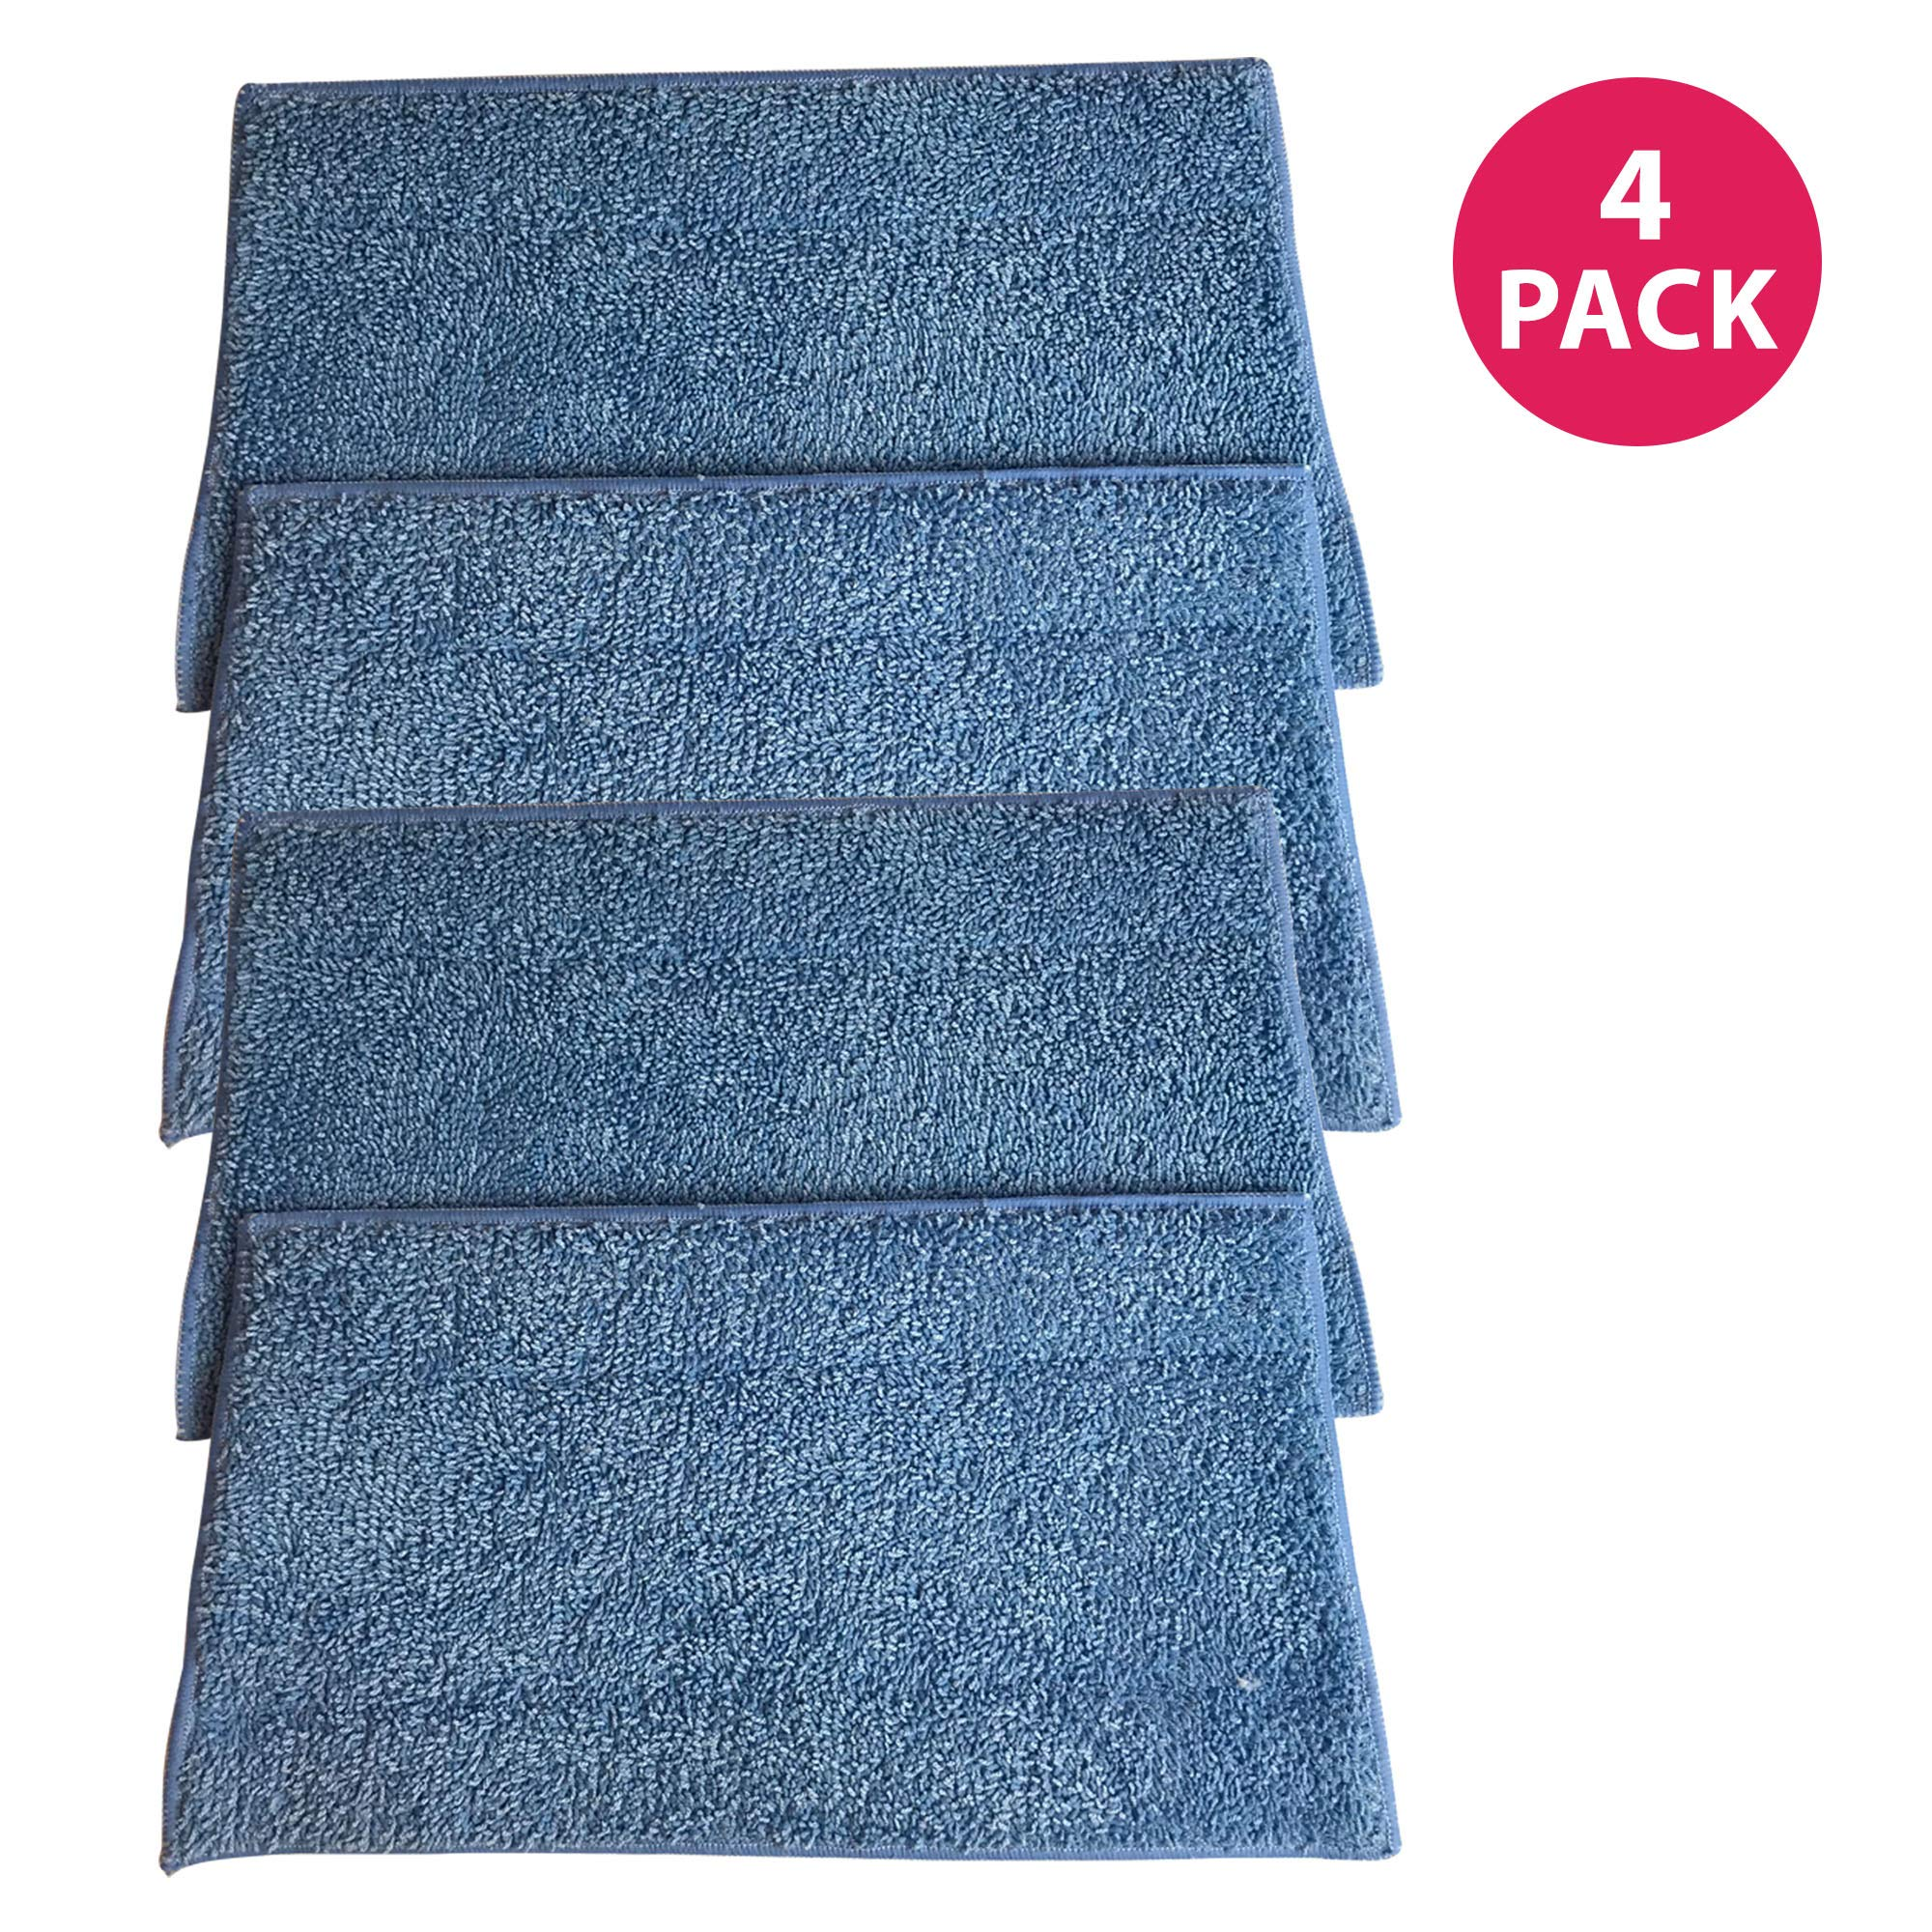 Crucial Vacuum Replacement Mop Pads - Compatible with Euroflex - Fits Euroflex EZ1 Monster Microfiber Steam Pads - Washable, Reusable Part, Models for Home, Office Universal Use - Easy Clean (4 Pack)